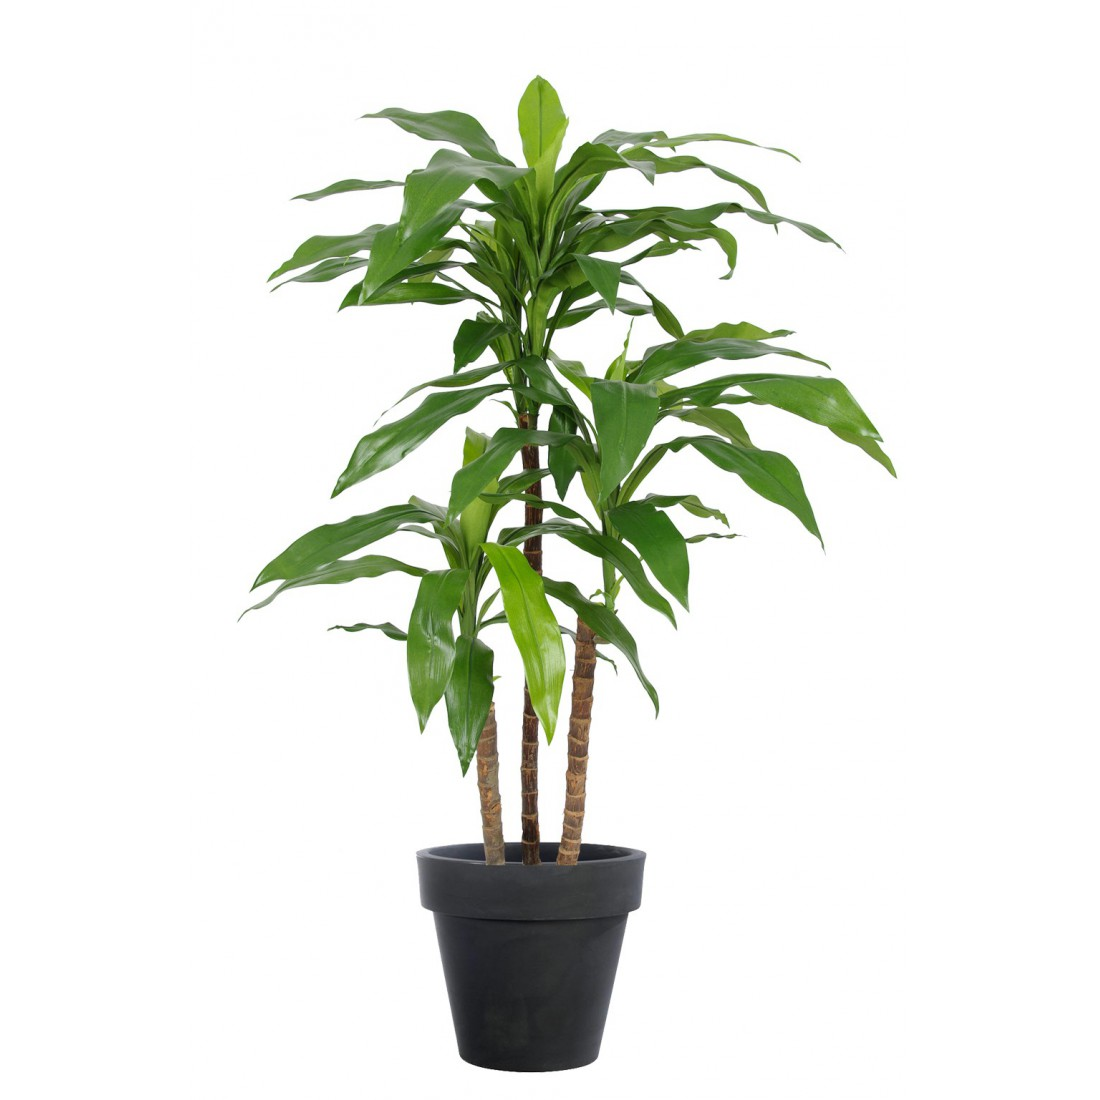 dracena artificiel ou dracaena fragrans janet craig 95 et 145 cm dracaena artificiels. Black Bedroom Furniture Sets. Home Design Ideas